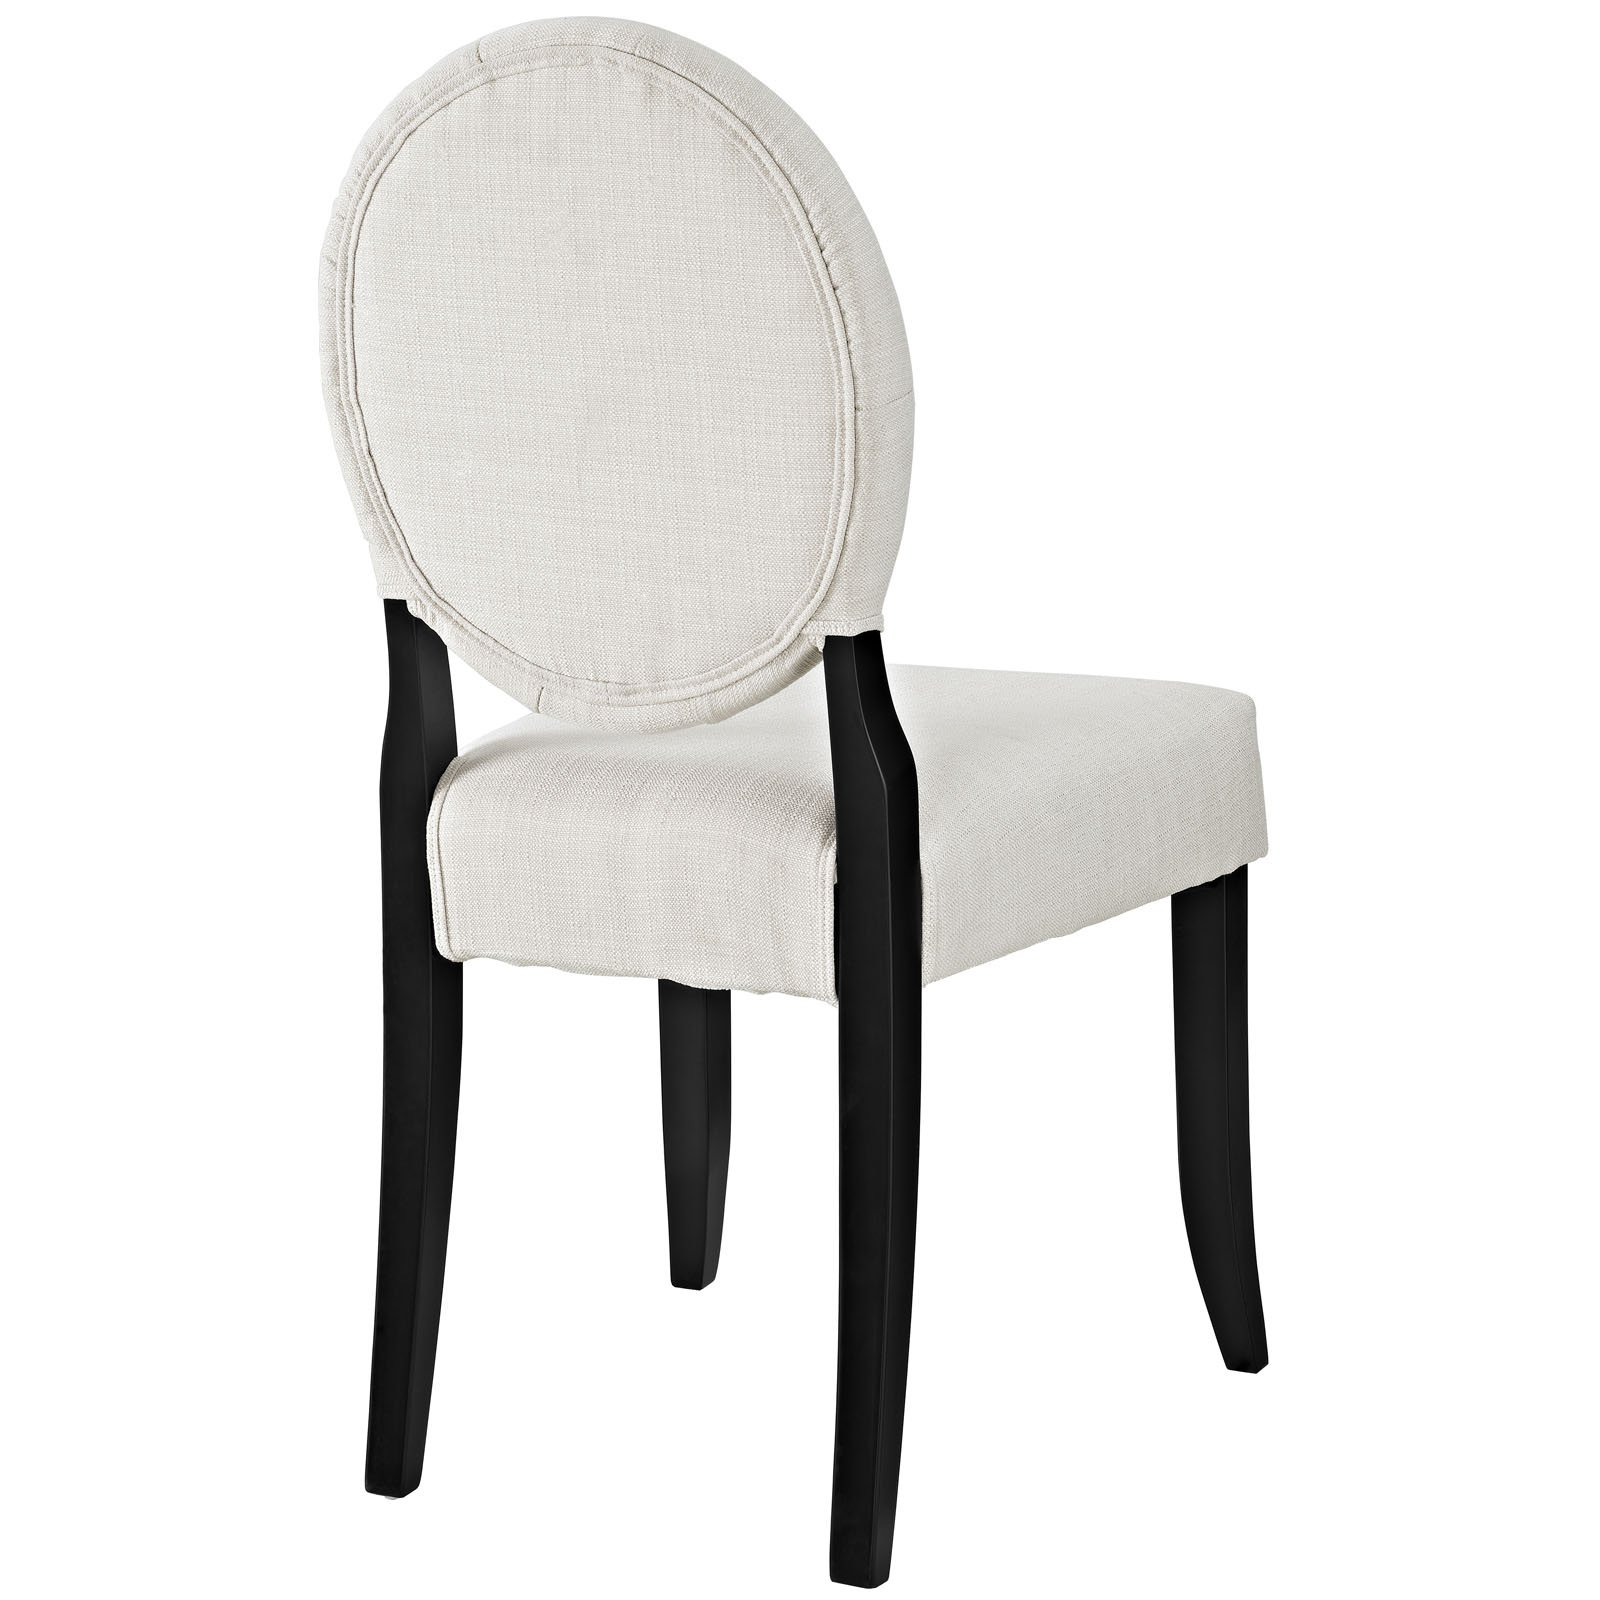 Modway Button Dining Side Chair, Beige by Modway (Image #4)